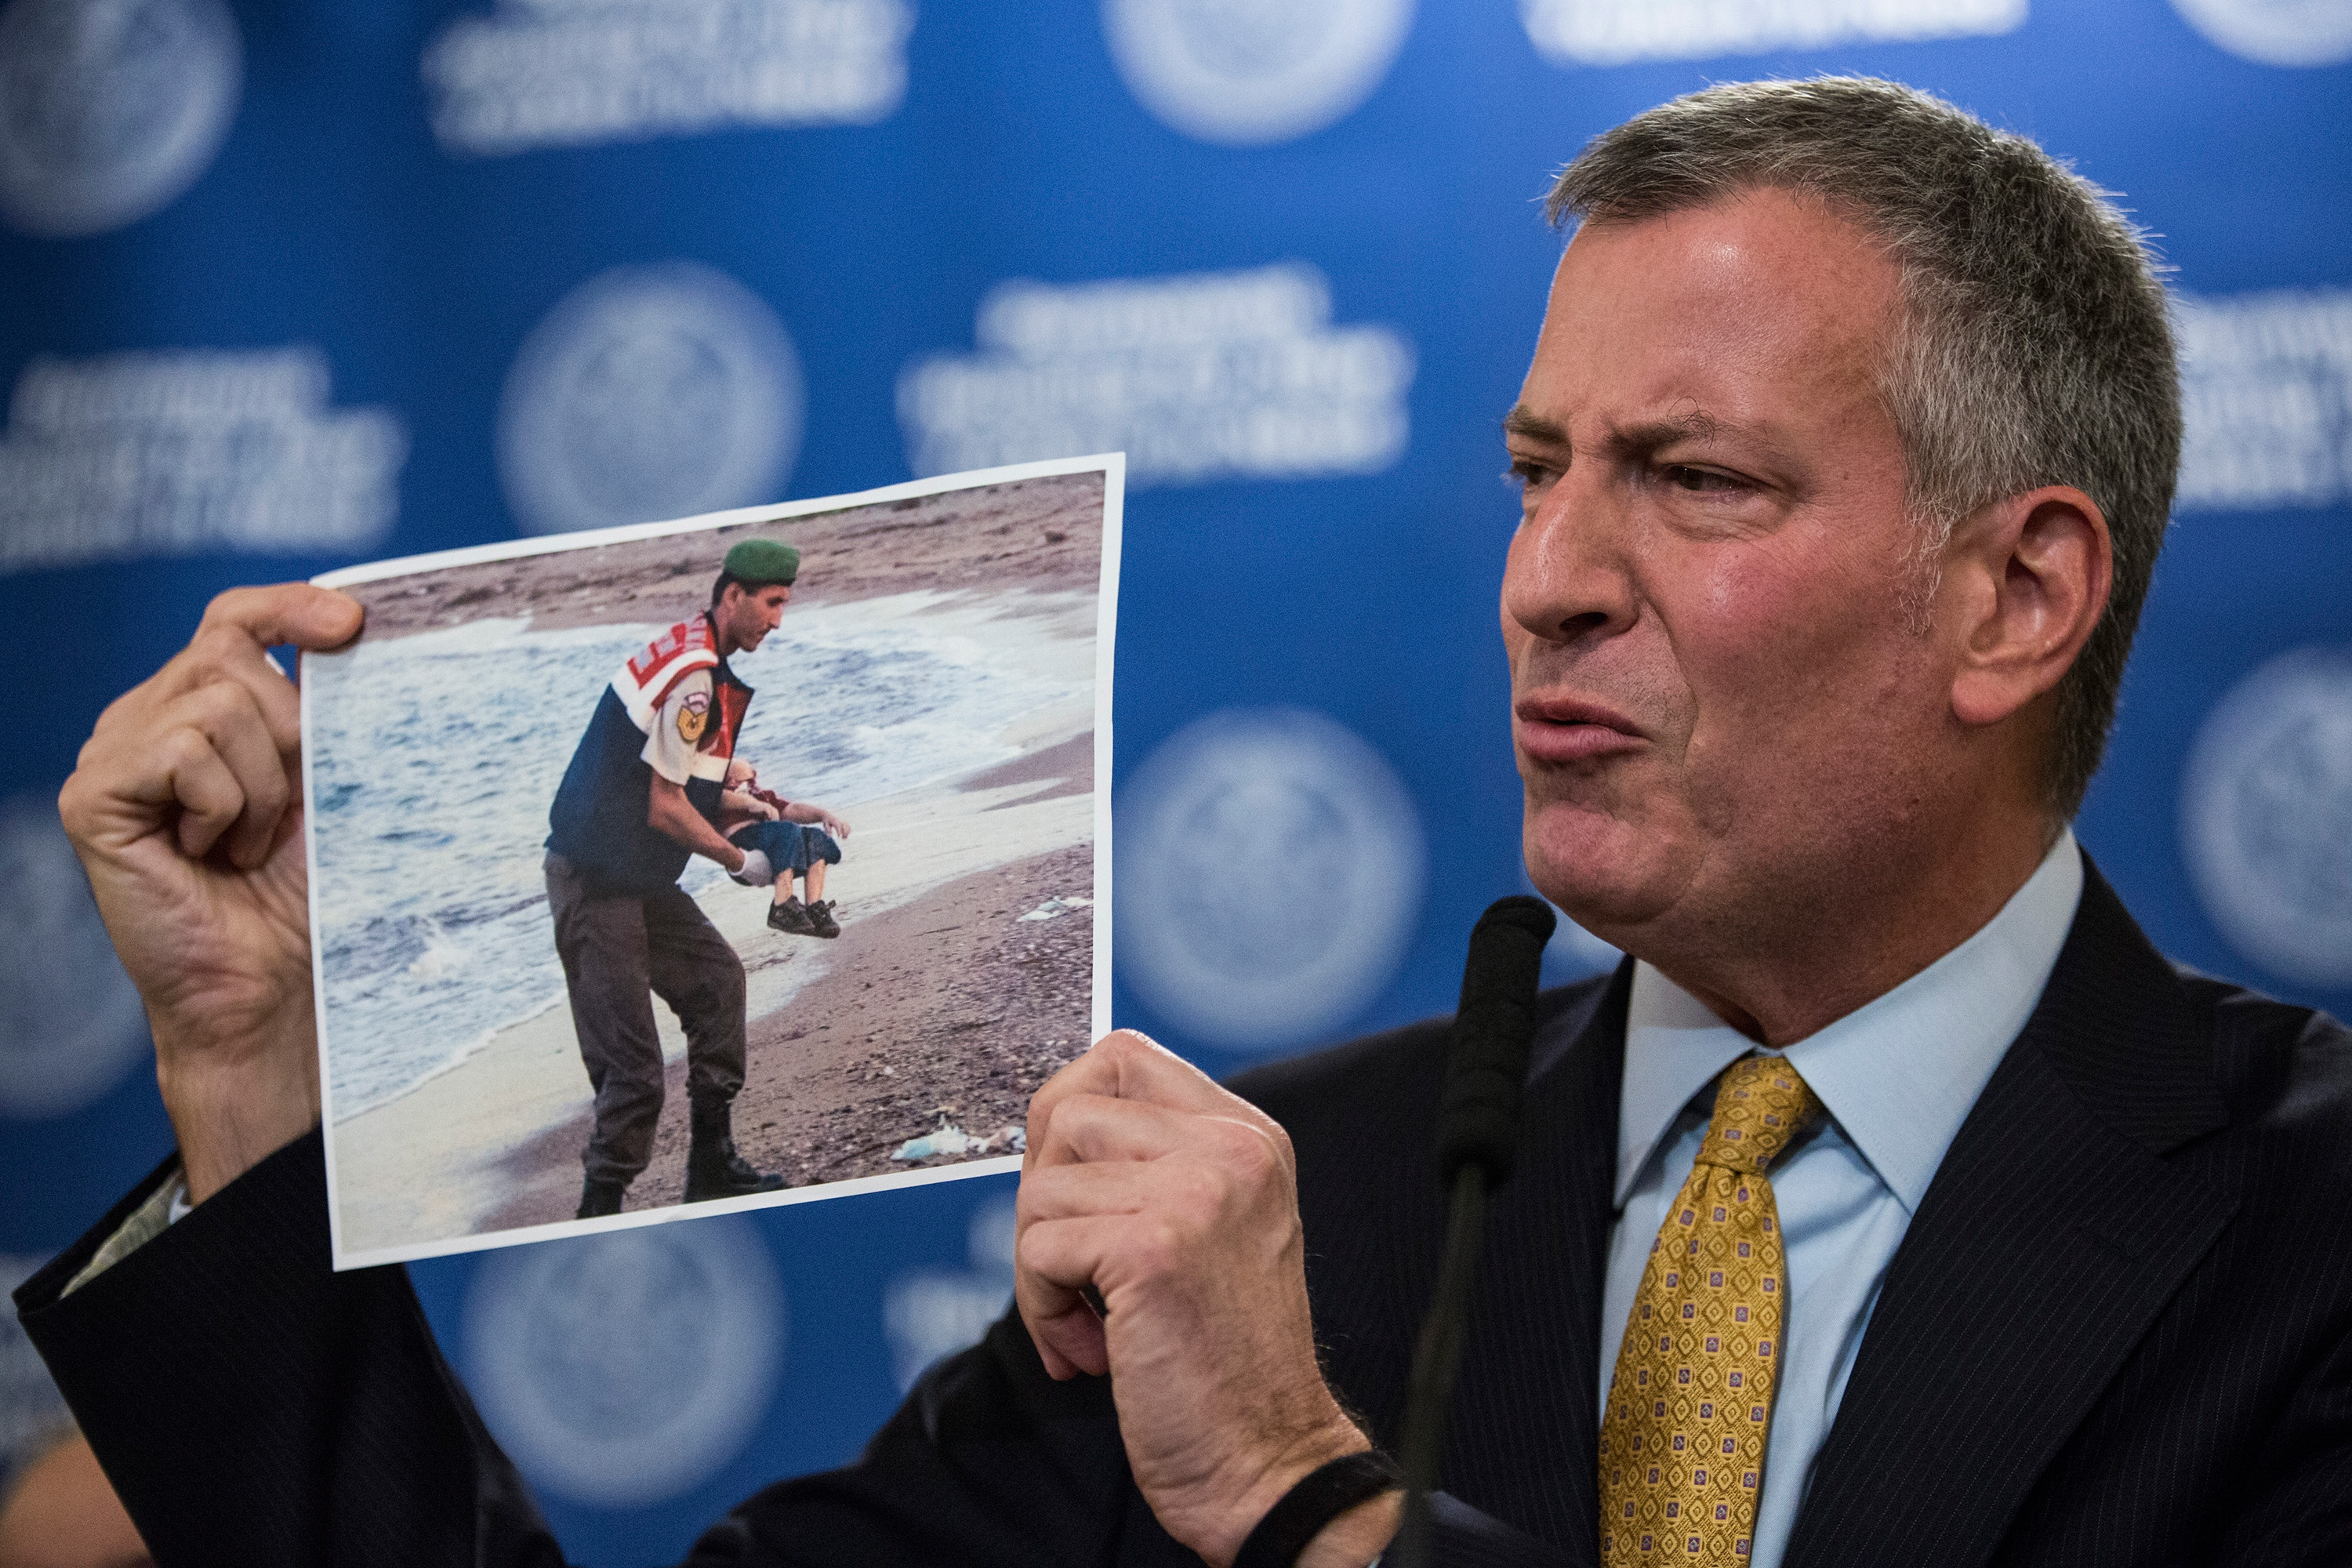 New York City Mayor Bill de Blasio holds up a photo of a the body of a dead child refugee being recovered from a beach while criticizing New Jersey Governor Chris Christie and his plan to reject refugees from the state of New Jersey during a question-and-answer period at the end a press conference announcing a new initiative for public housing for homeless people (Photo by Andrew Burton/Getty Images)